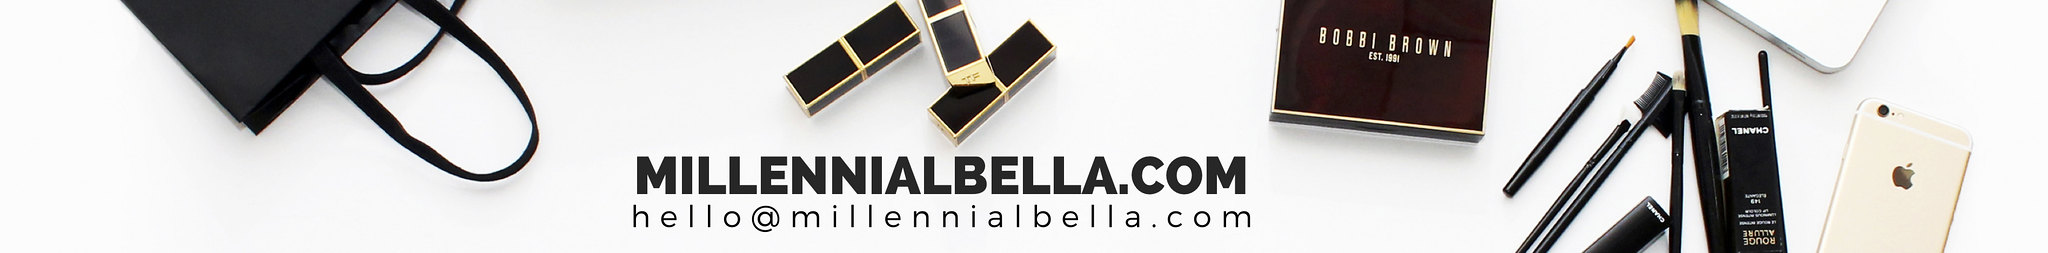 Millennial Bella for Your Branding Needs -- Start A Blog That Earns